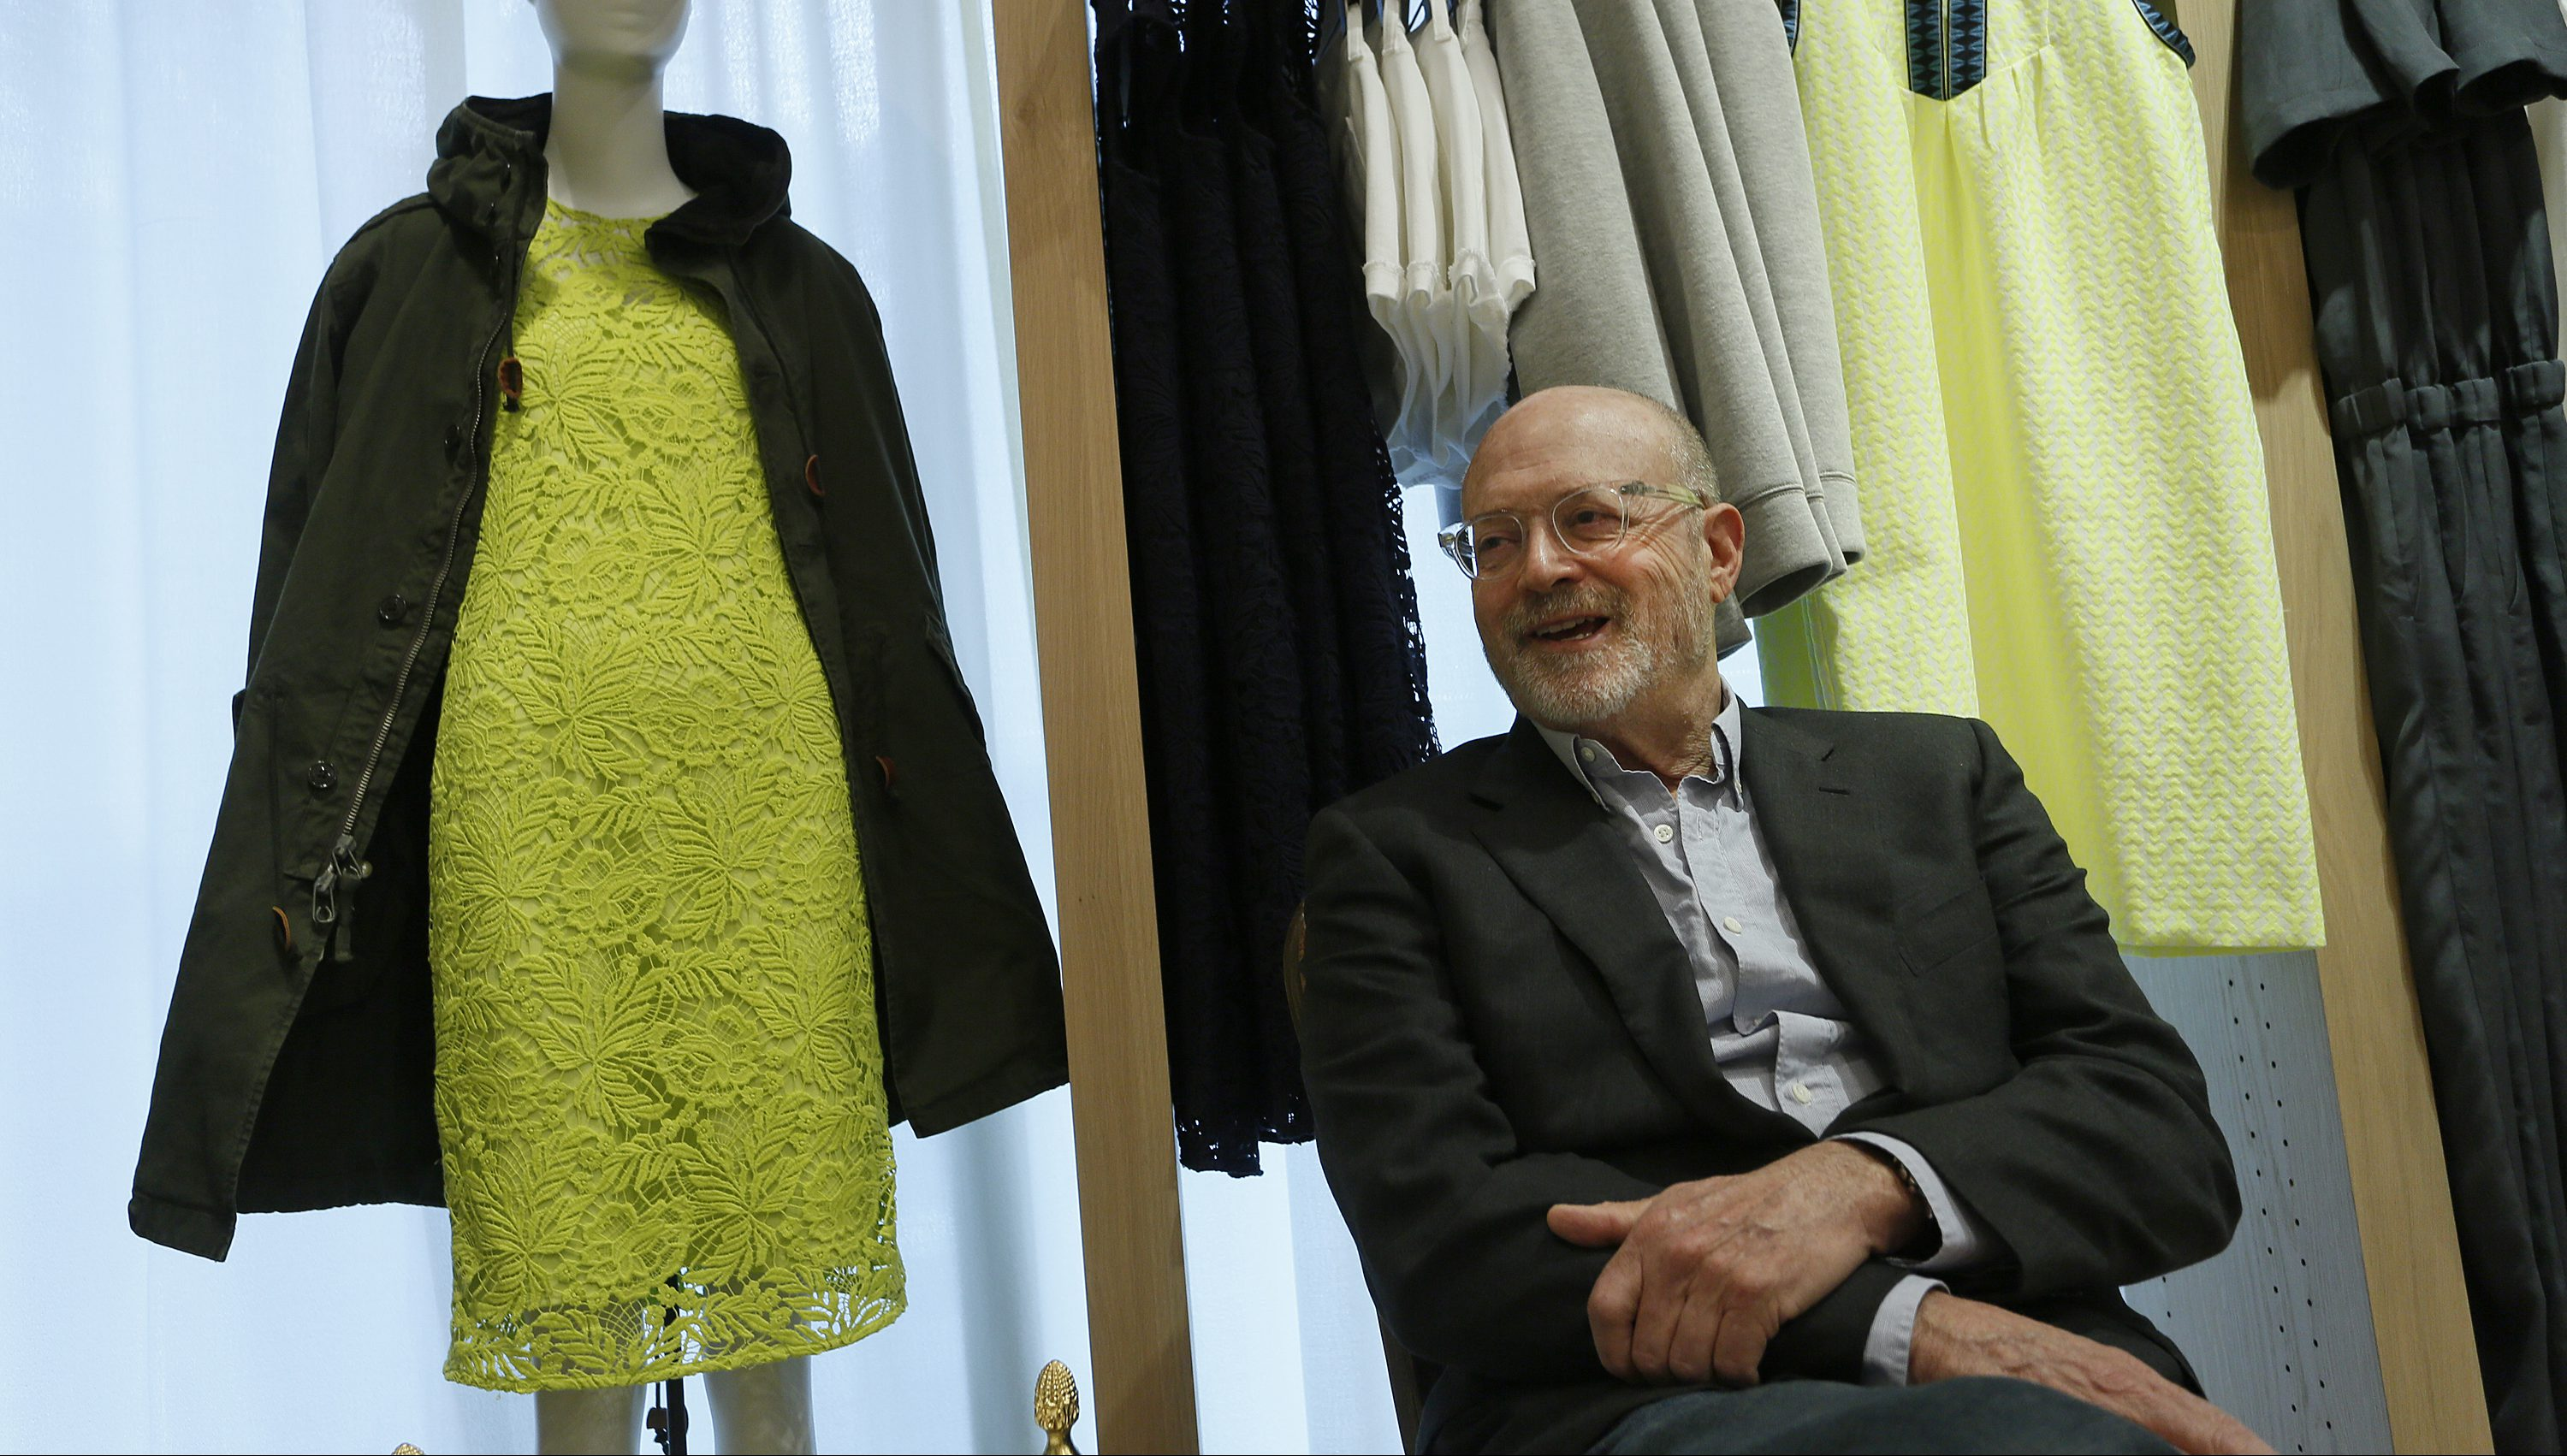 J. Crew CEO Mickey Drexler smiles during an interview at the new J. Crew store in Hong Kong, Wednesday, May 21, 2014. U.S. fashion retailer J. Crew is opening a pair of shops in Hong Kong. It's the latest Western brand carving out a foothold in the notoriously high-rent city as it explores future expansion in the lucrative China market. (AP Photo/Vincent Yu)